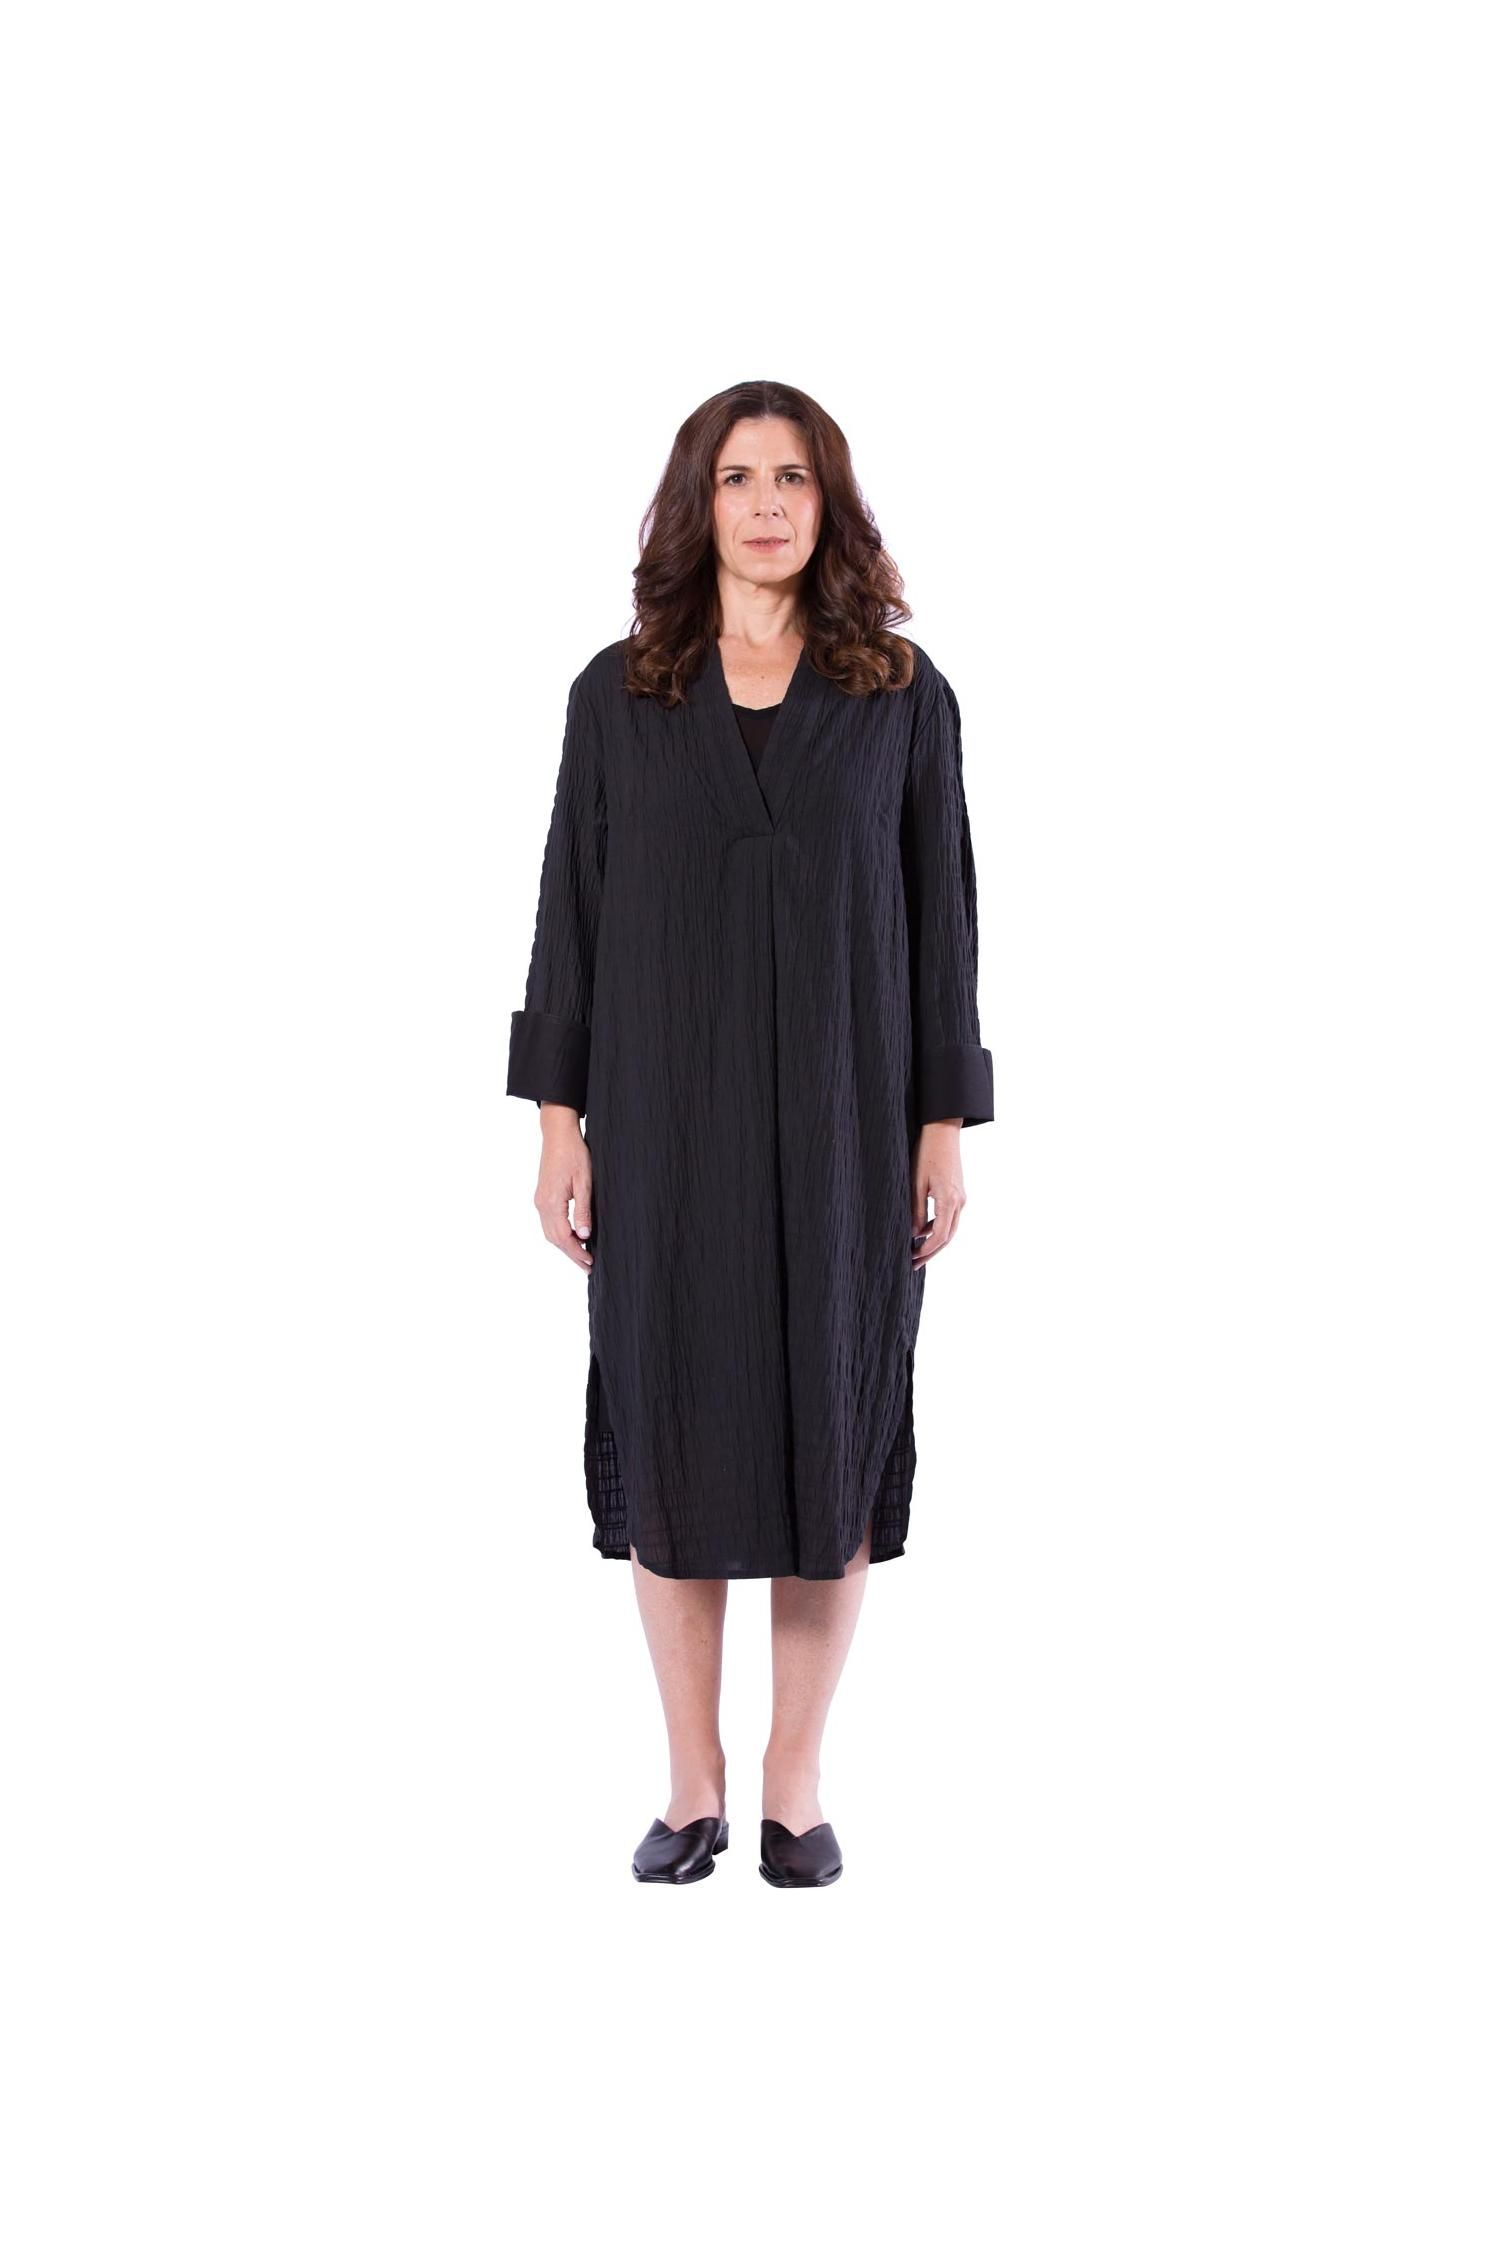 Black relaxed dress | shirt